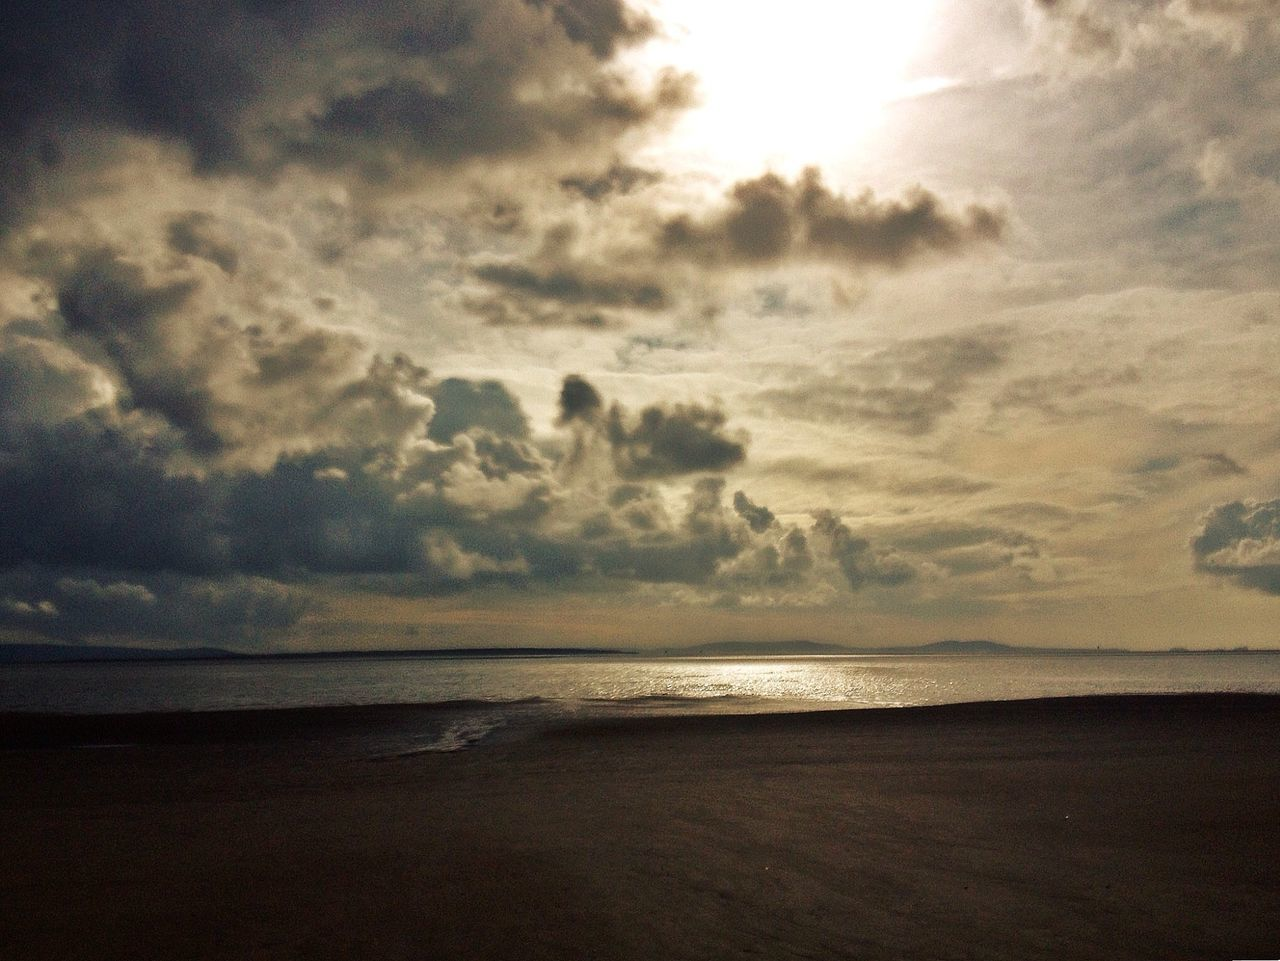 sea, beach, horizon over water, water, scenics, nature, sky, tranquil scene, beauty in nature, tranquility, idyllic, sunset, landscape, no people, cloud - sky, sand, outdoors, horizon, day